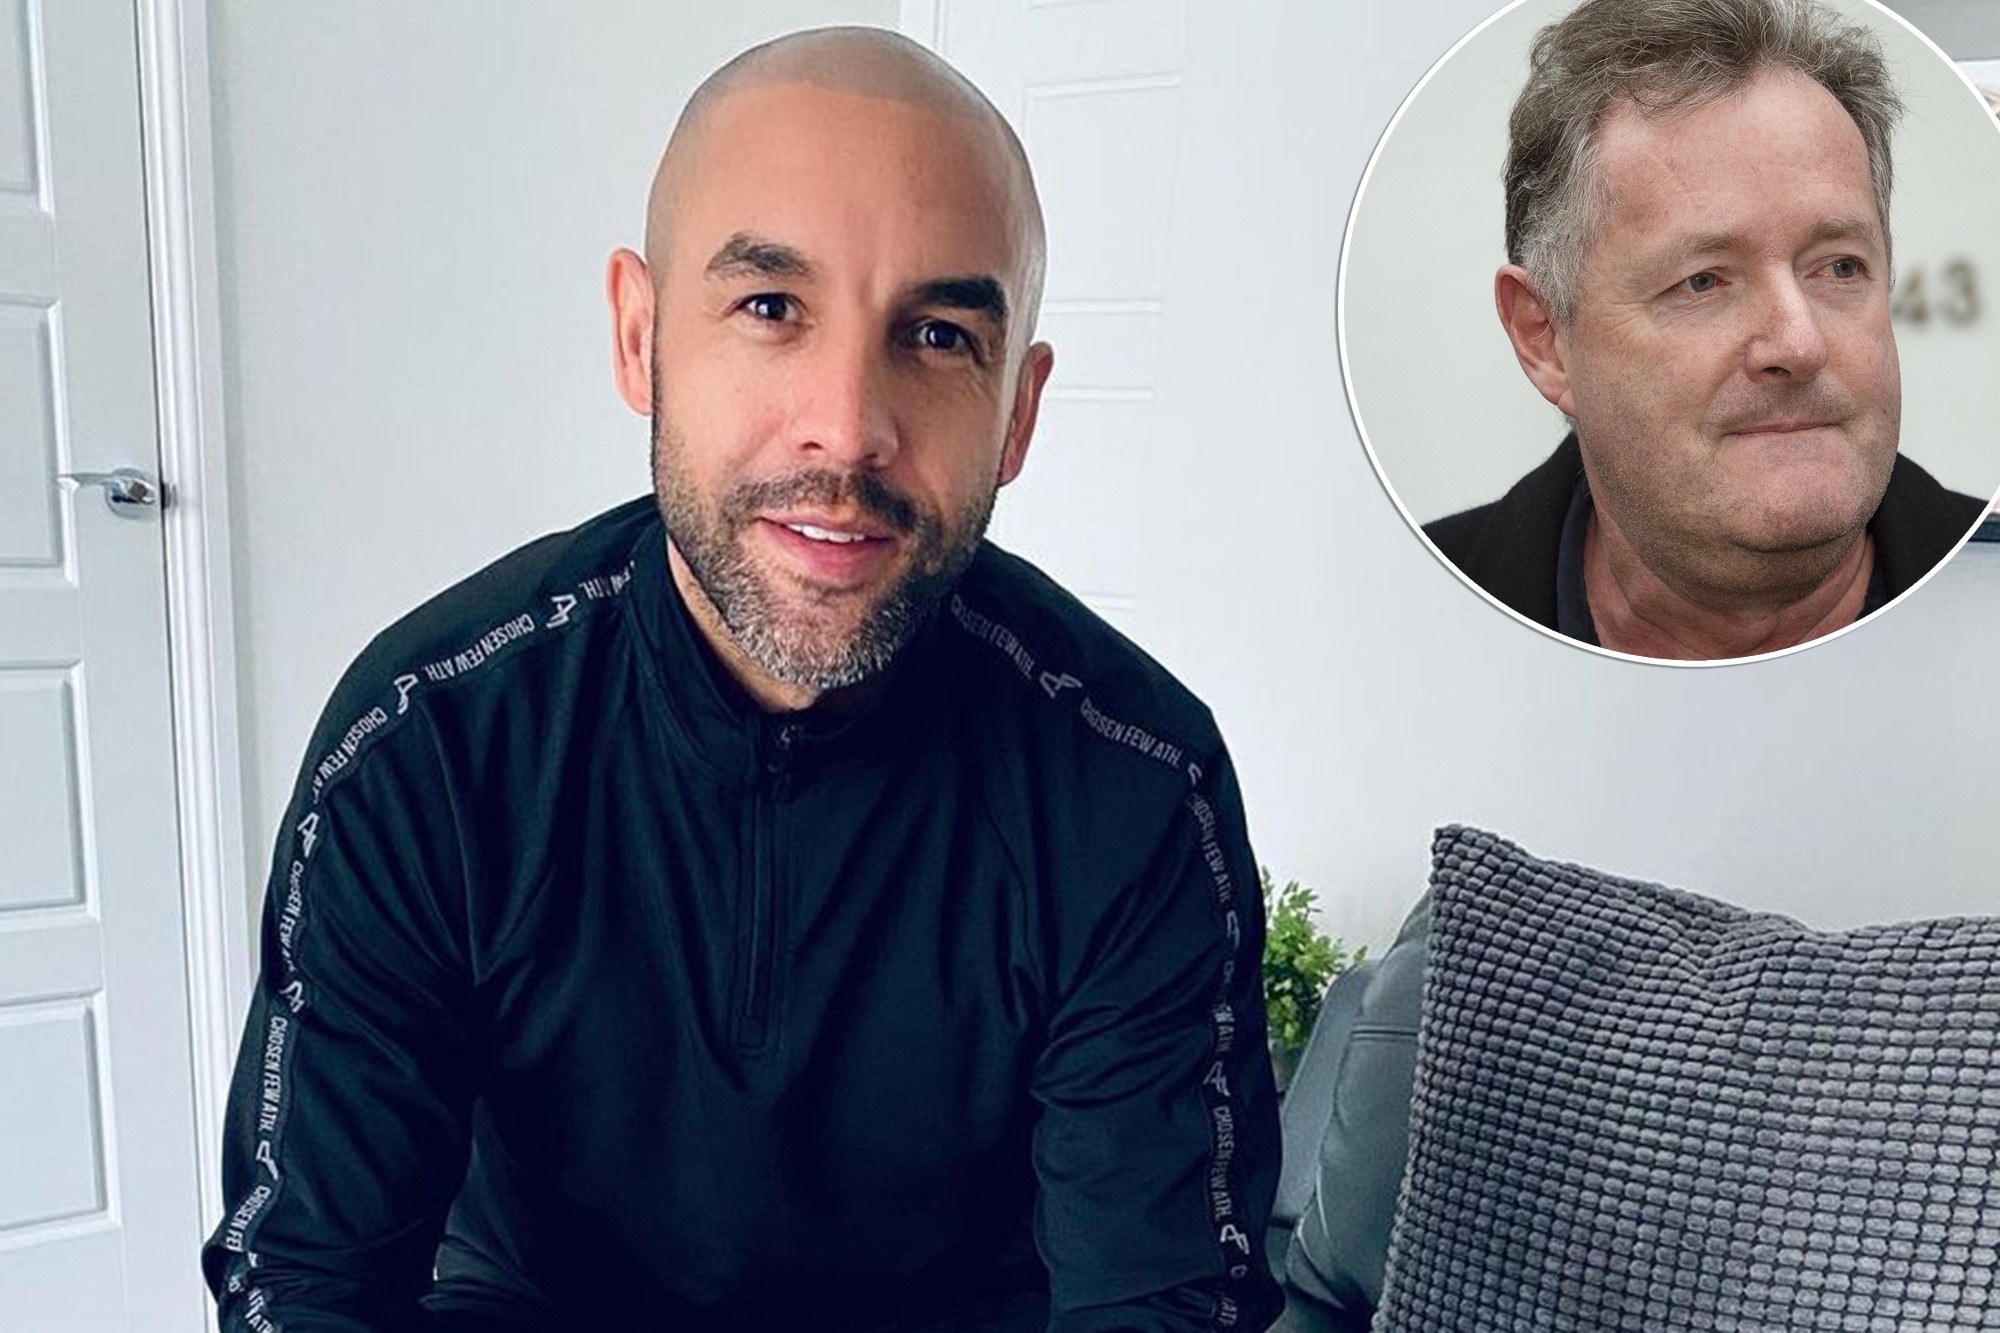 Alex Beresford takes to Instagram after Piers Morgan 'uptight' jab